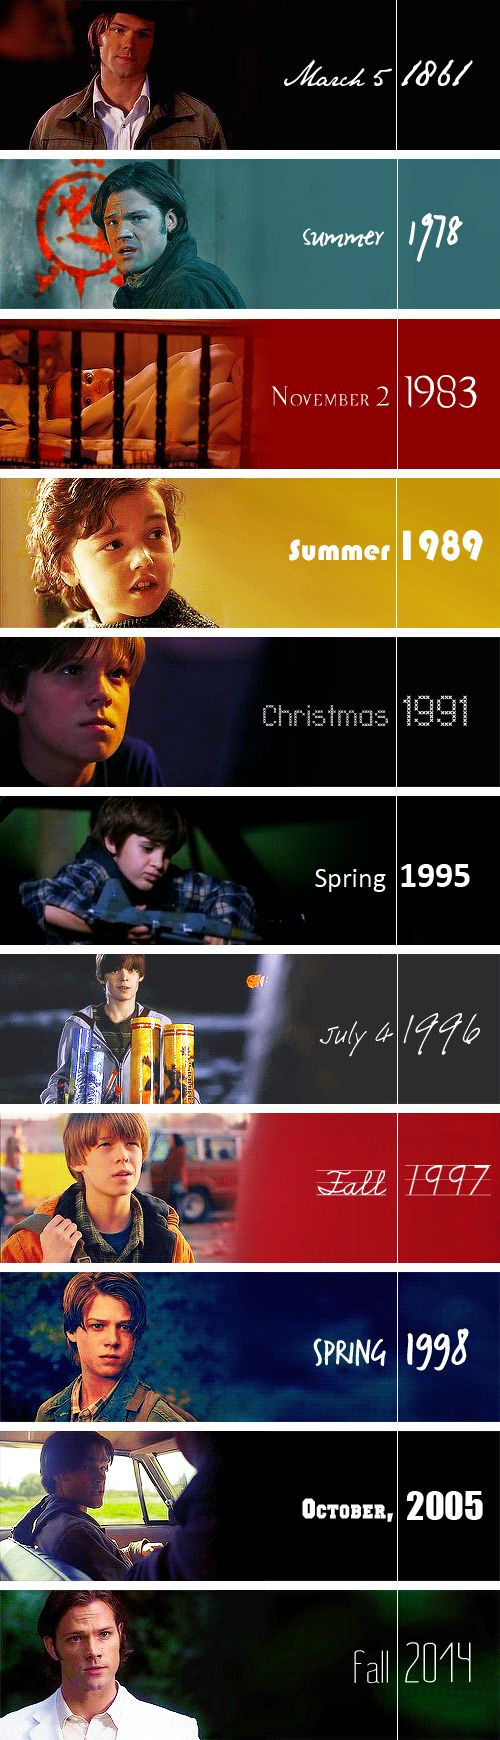 Sam Winchester timeline. Oh my Chuck should I die from cuteness of from sadness?